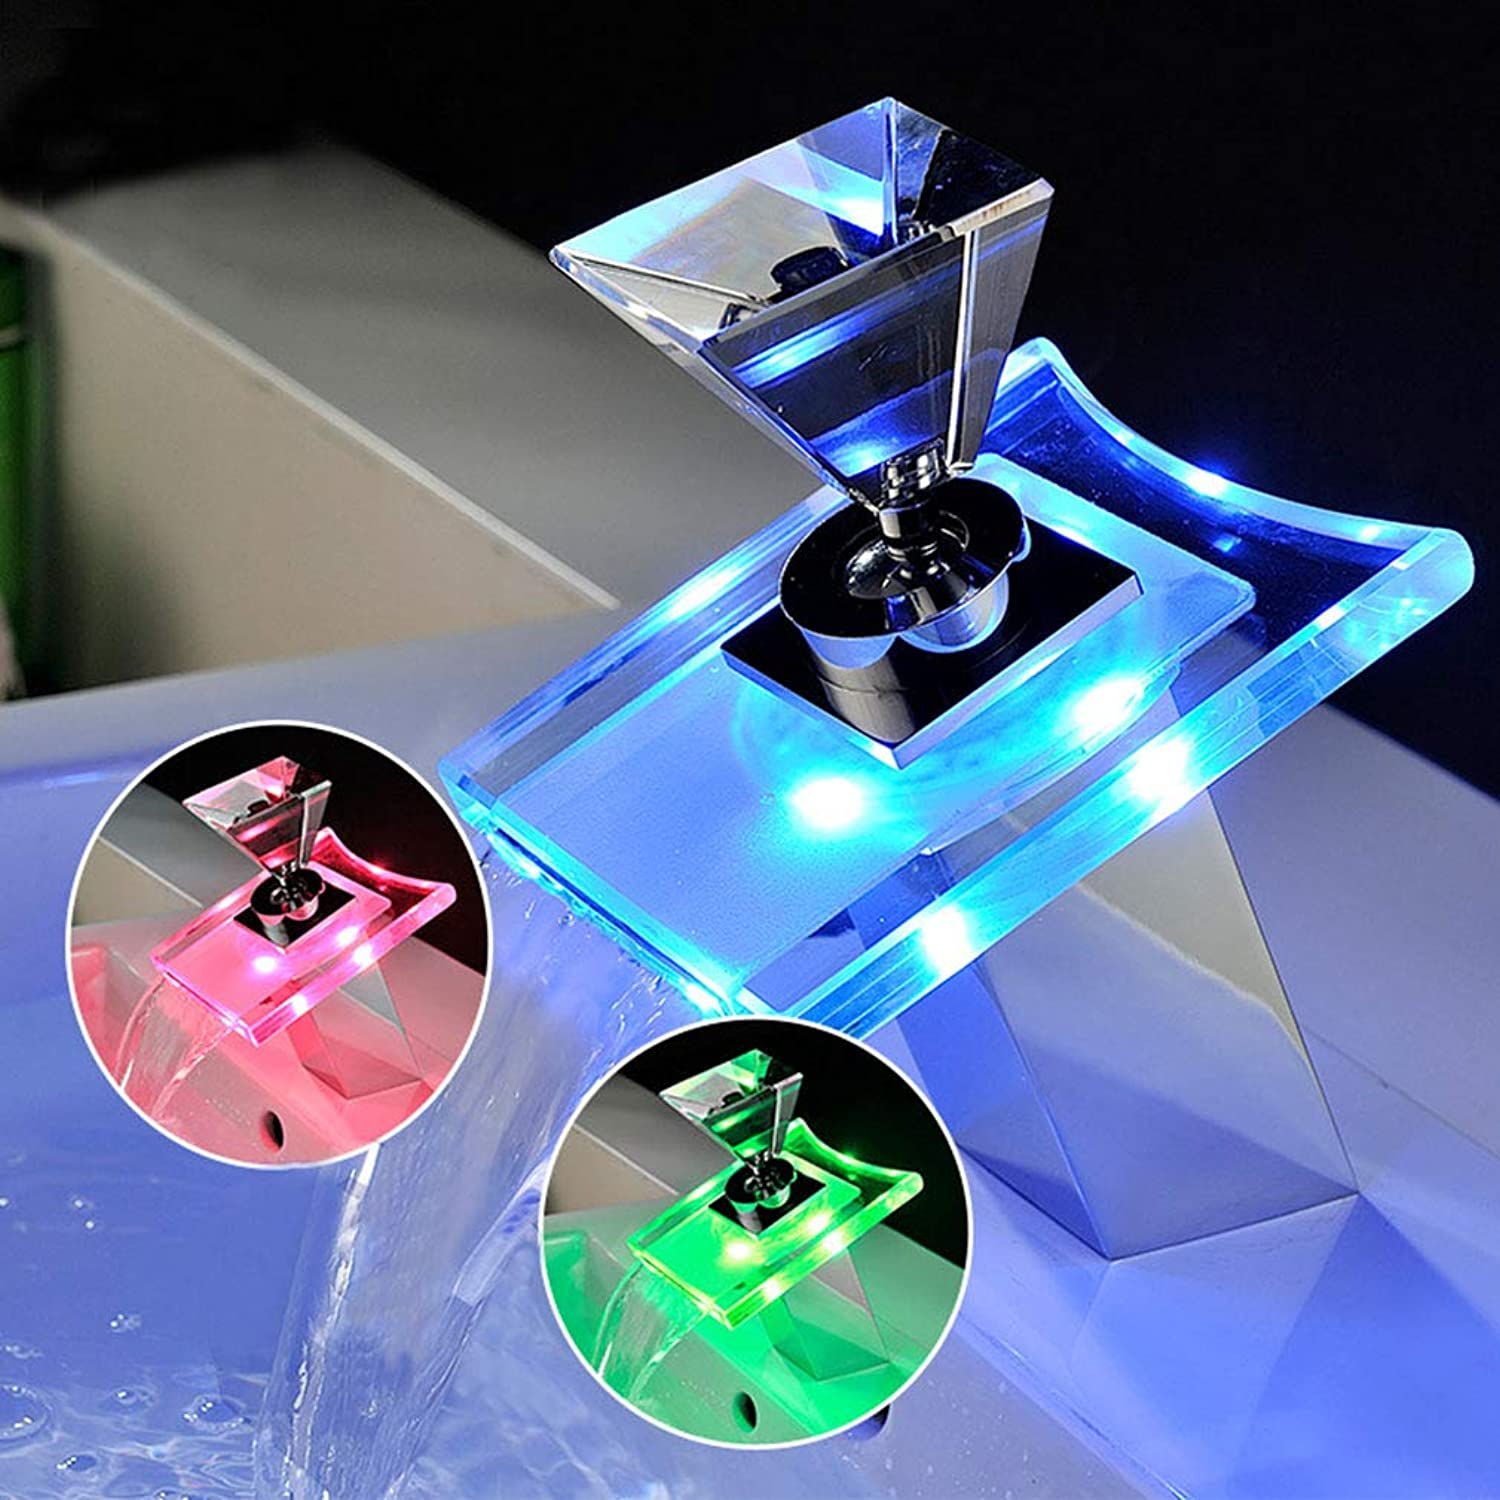 QLIGHA Bathroom Sink Taps Copper LED Light Temperature Control color Change Waterfall Glass Hot And Cold Mixer Basin Faucet,Chrome